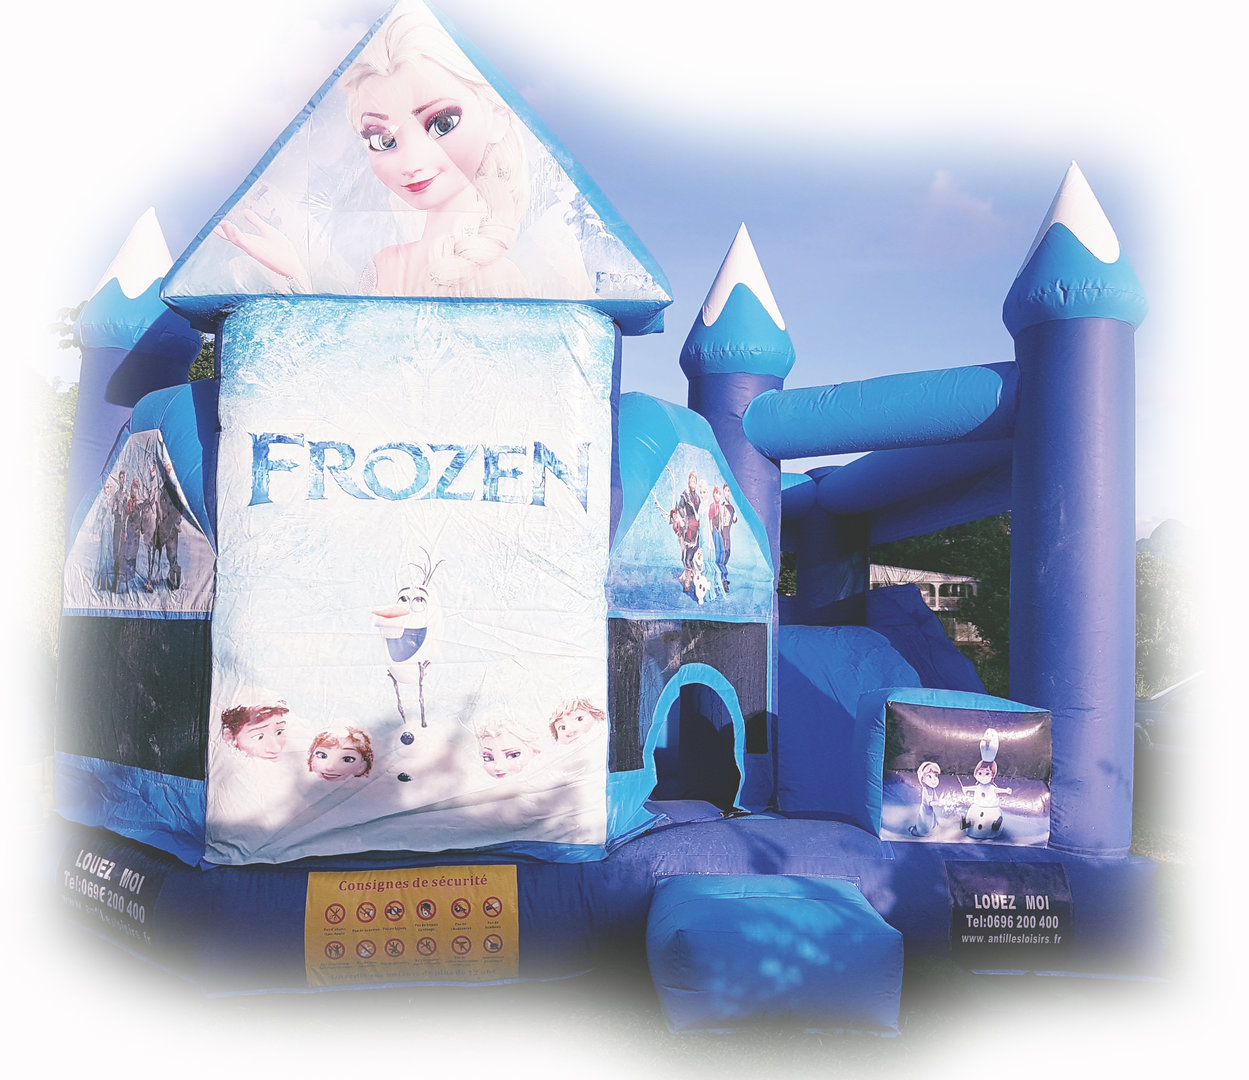 ch teau reine des neiges frozen pour enfants de 1 10 ans page d 39 accueil. Black Bedroom Furniture Sets. Home Design Ideas